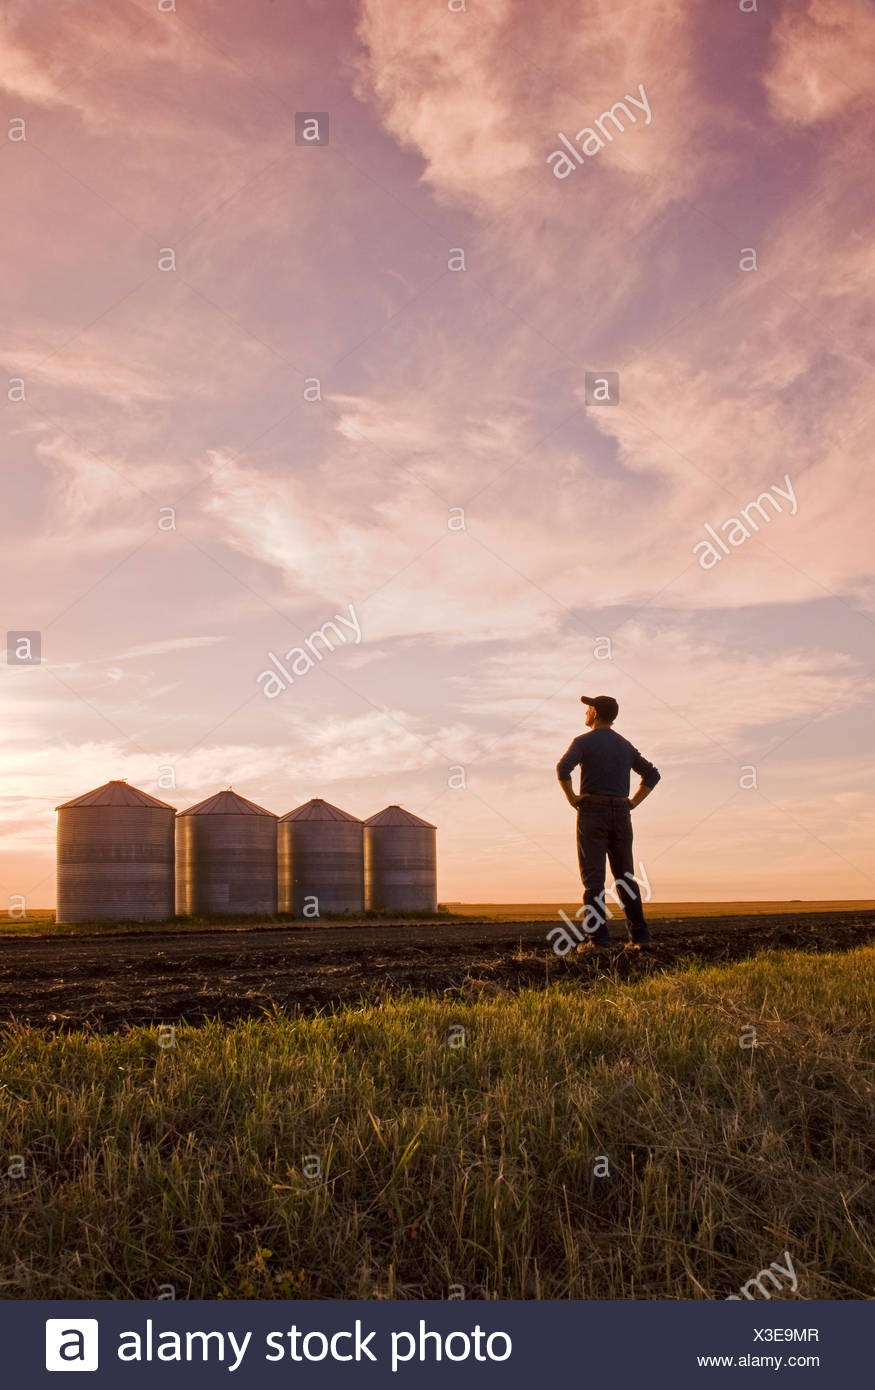 a farmer looks out over grain storage bins/silos at sunset,near Carey, Manitoba, Canada - Stock Image